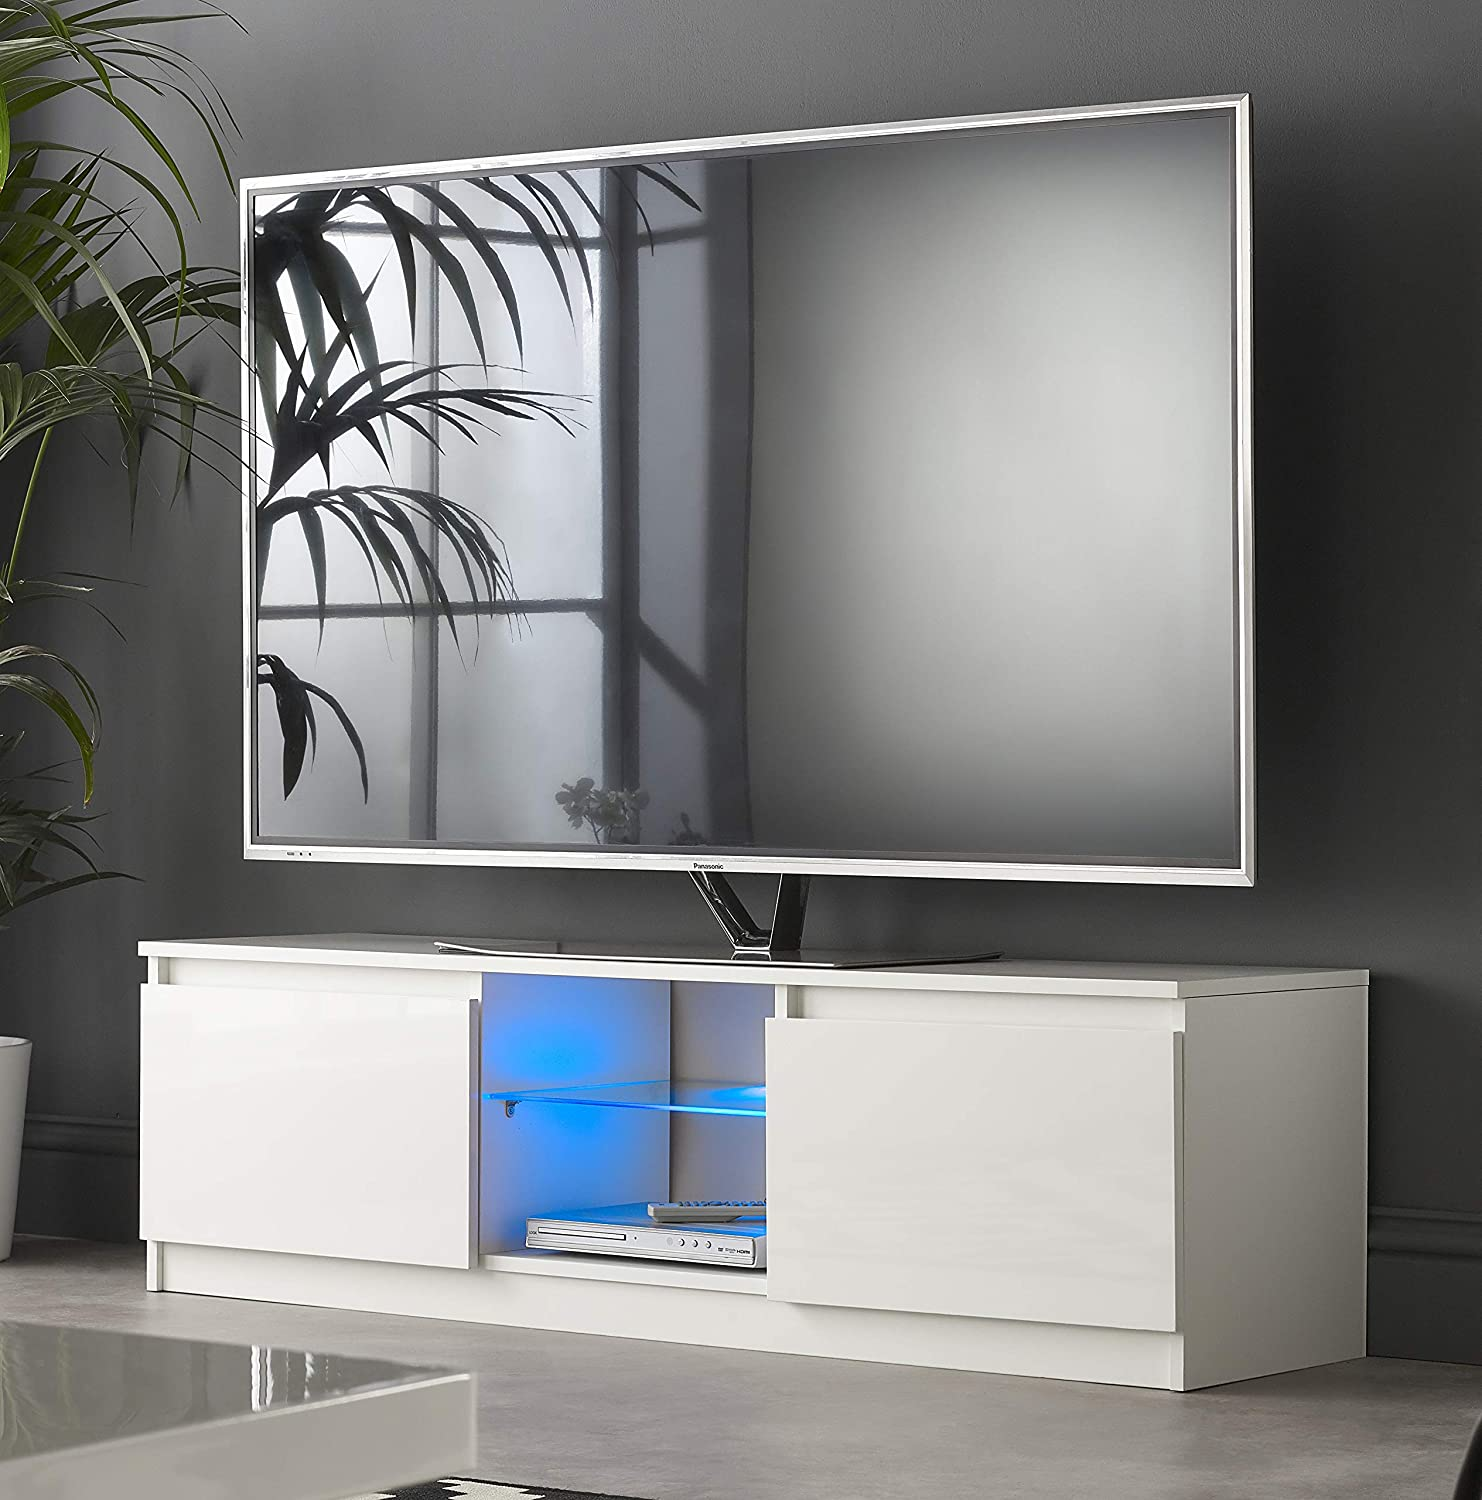 Mmt Rtv1400 White Tv Stand Cabinet Unit With Led Lights 40 59 50 55 60 65 Inch 4k Tv 140cm Wide Amazon Co Uk Tv